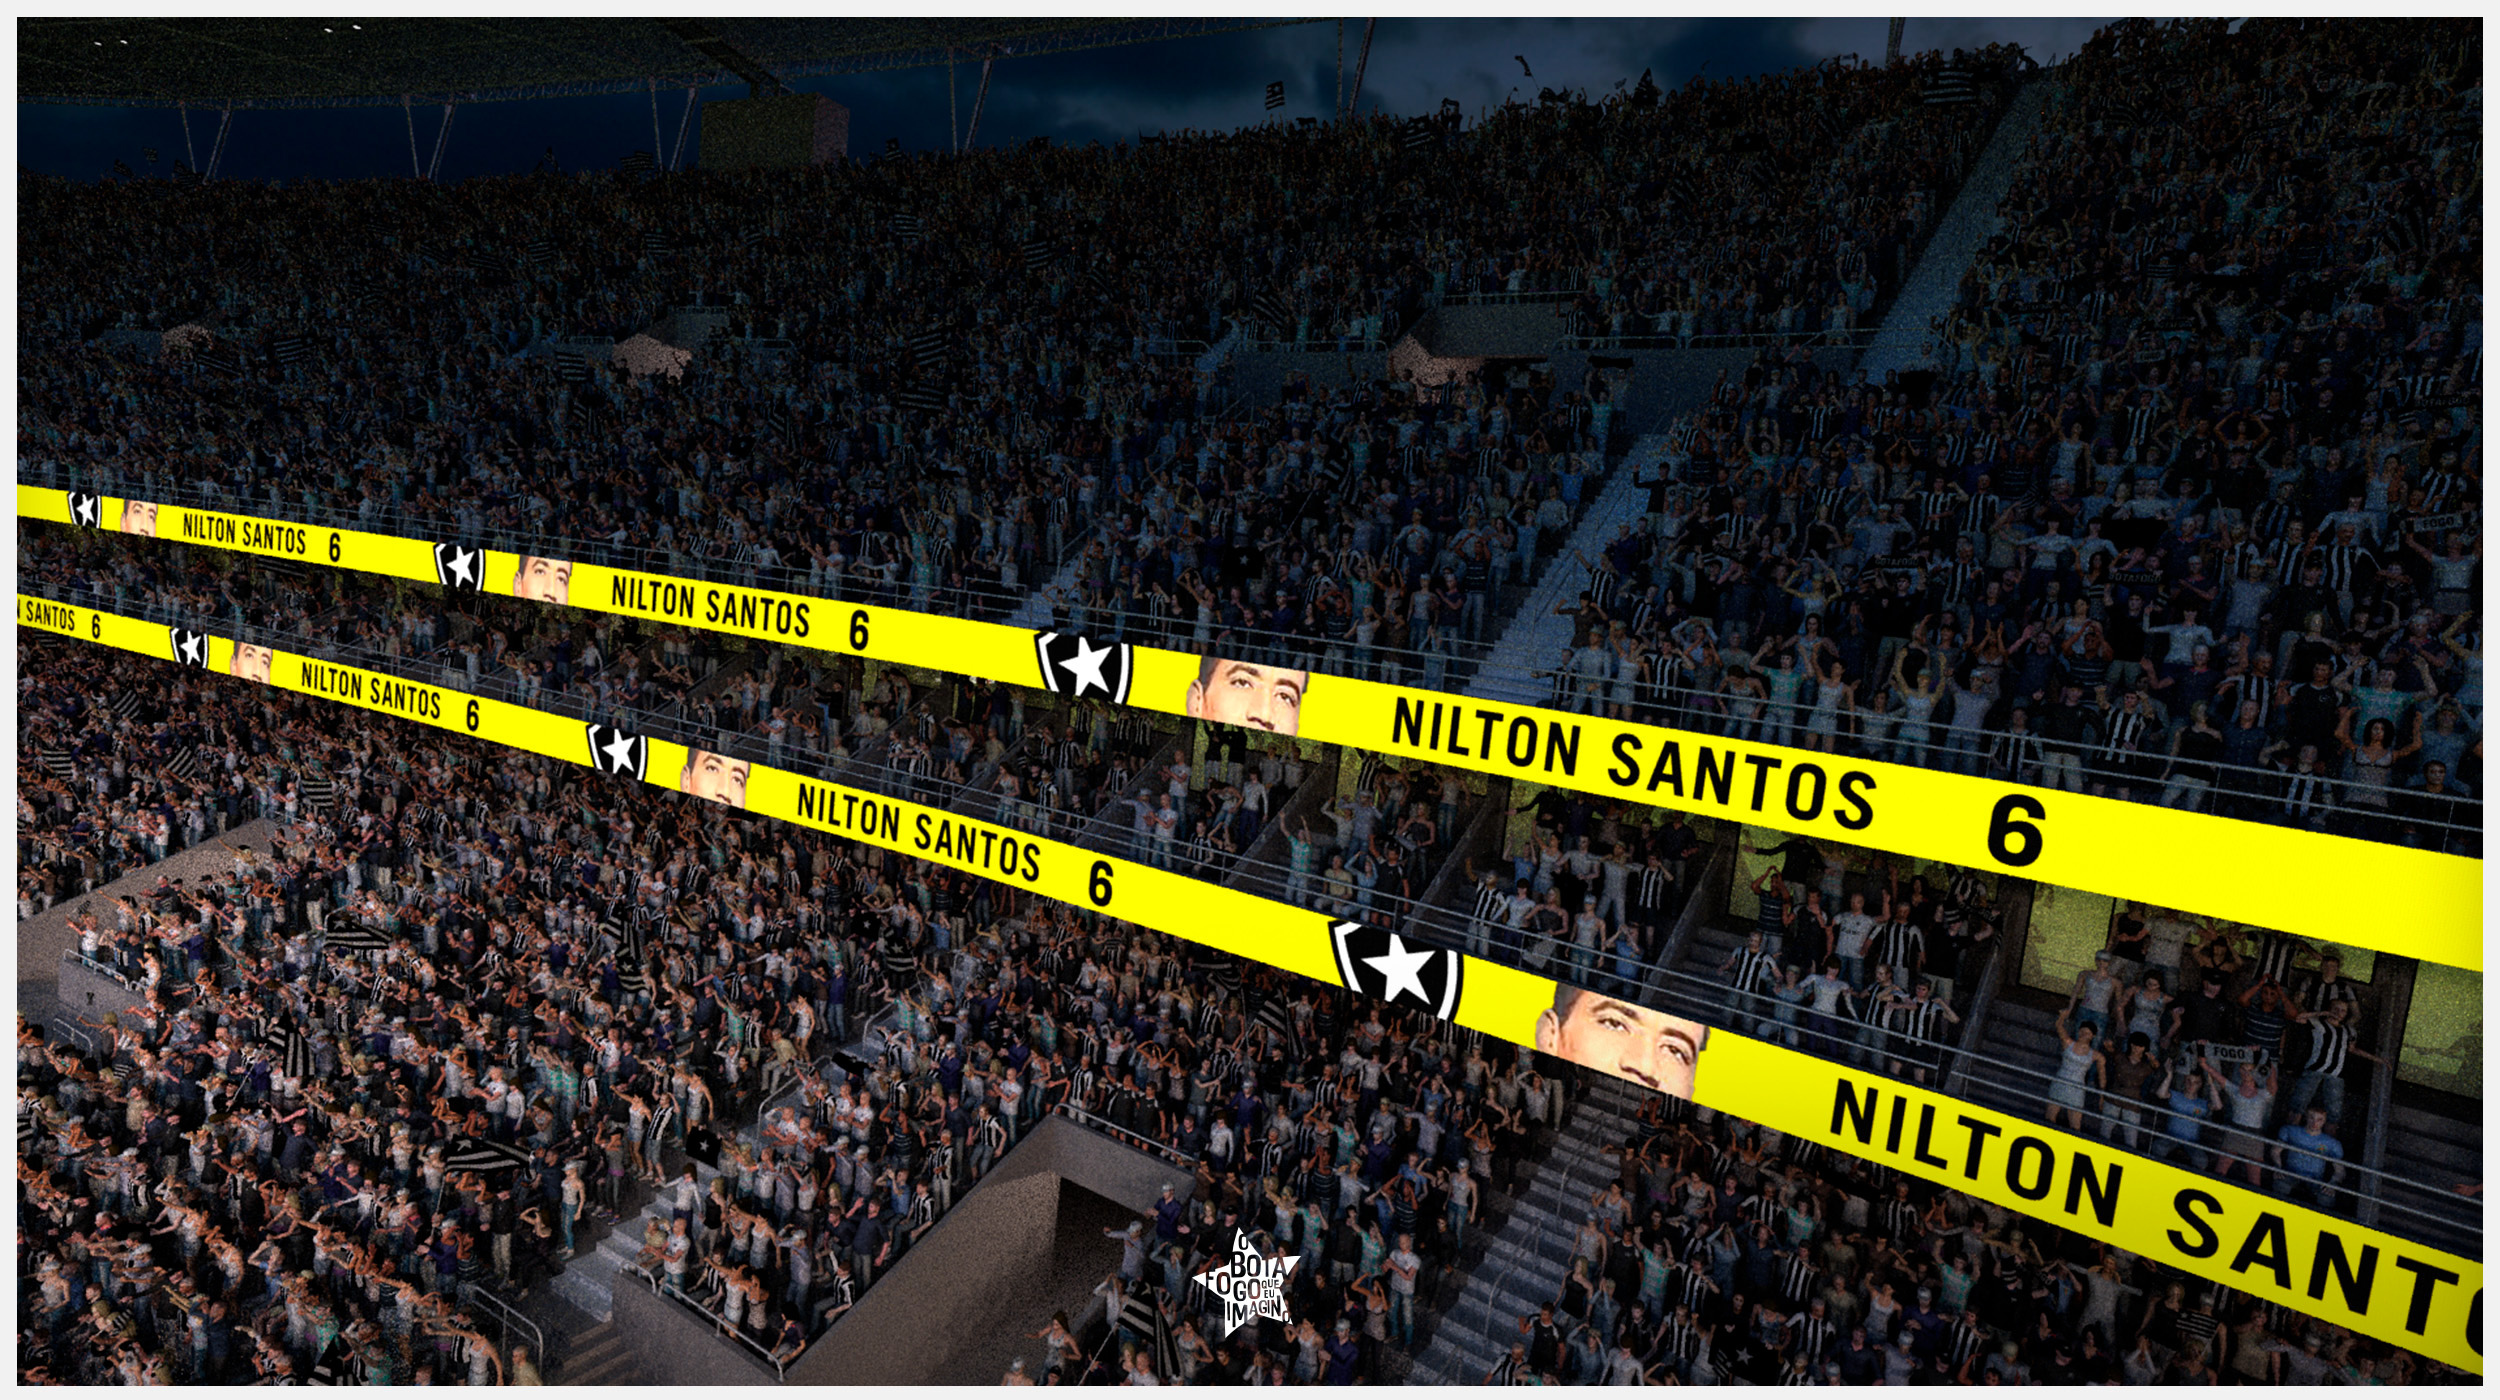 LEDs in Nilton Santos Stadium on Behance